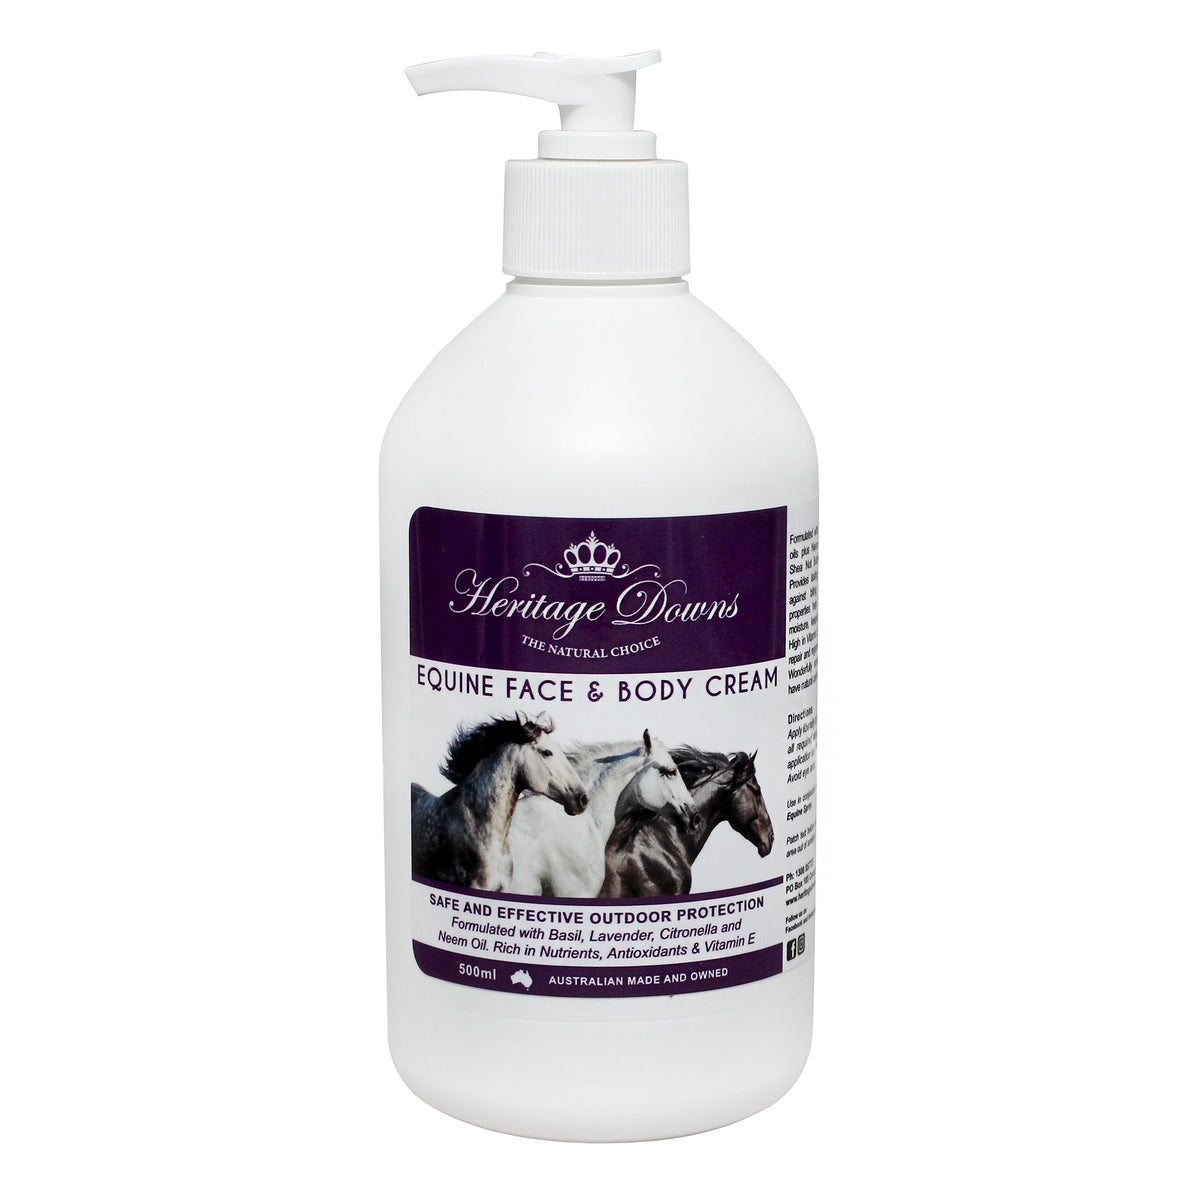 Heritage Downs Equine Face & Body Cream for Natural Insect Protection